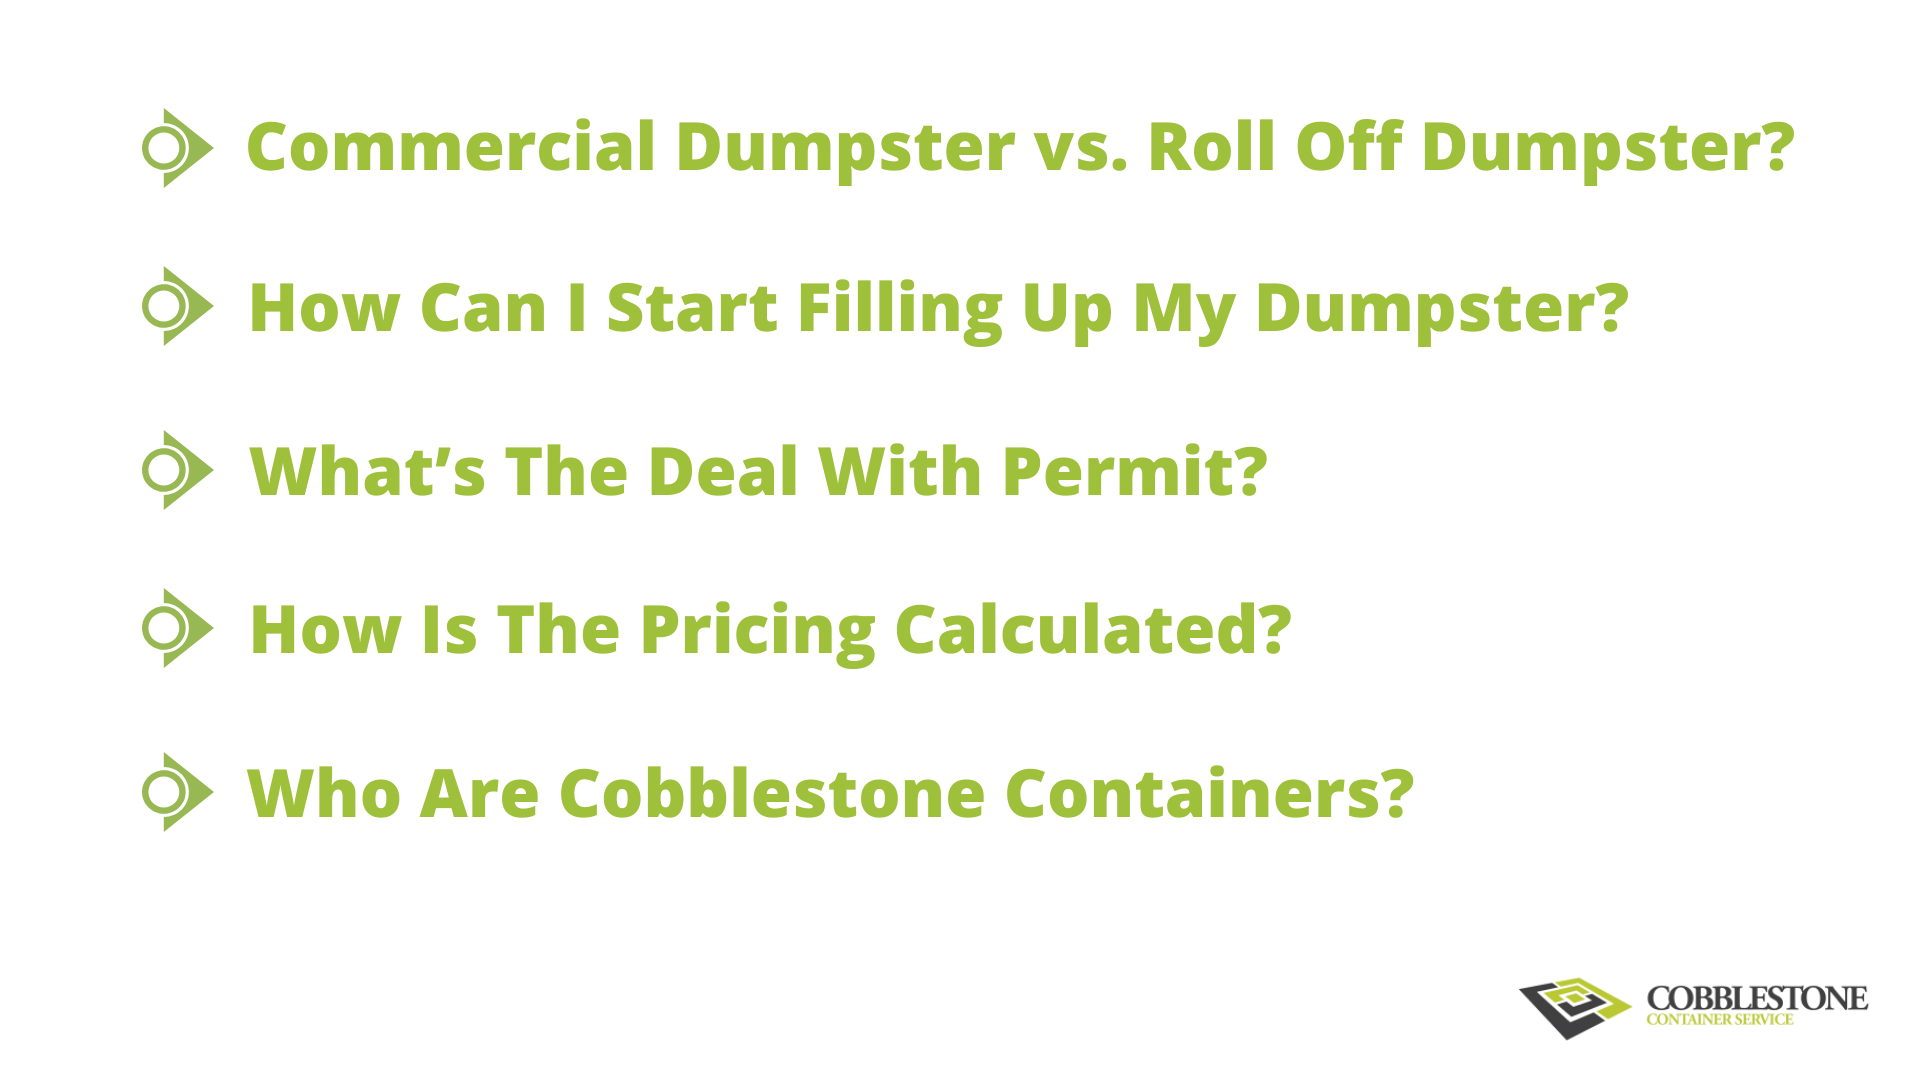 Questions About Commercial Dumpsters